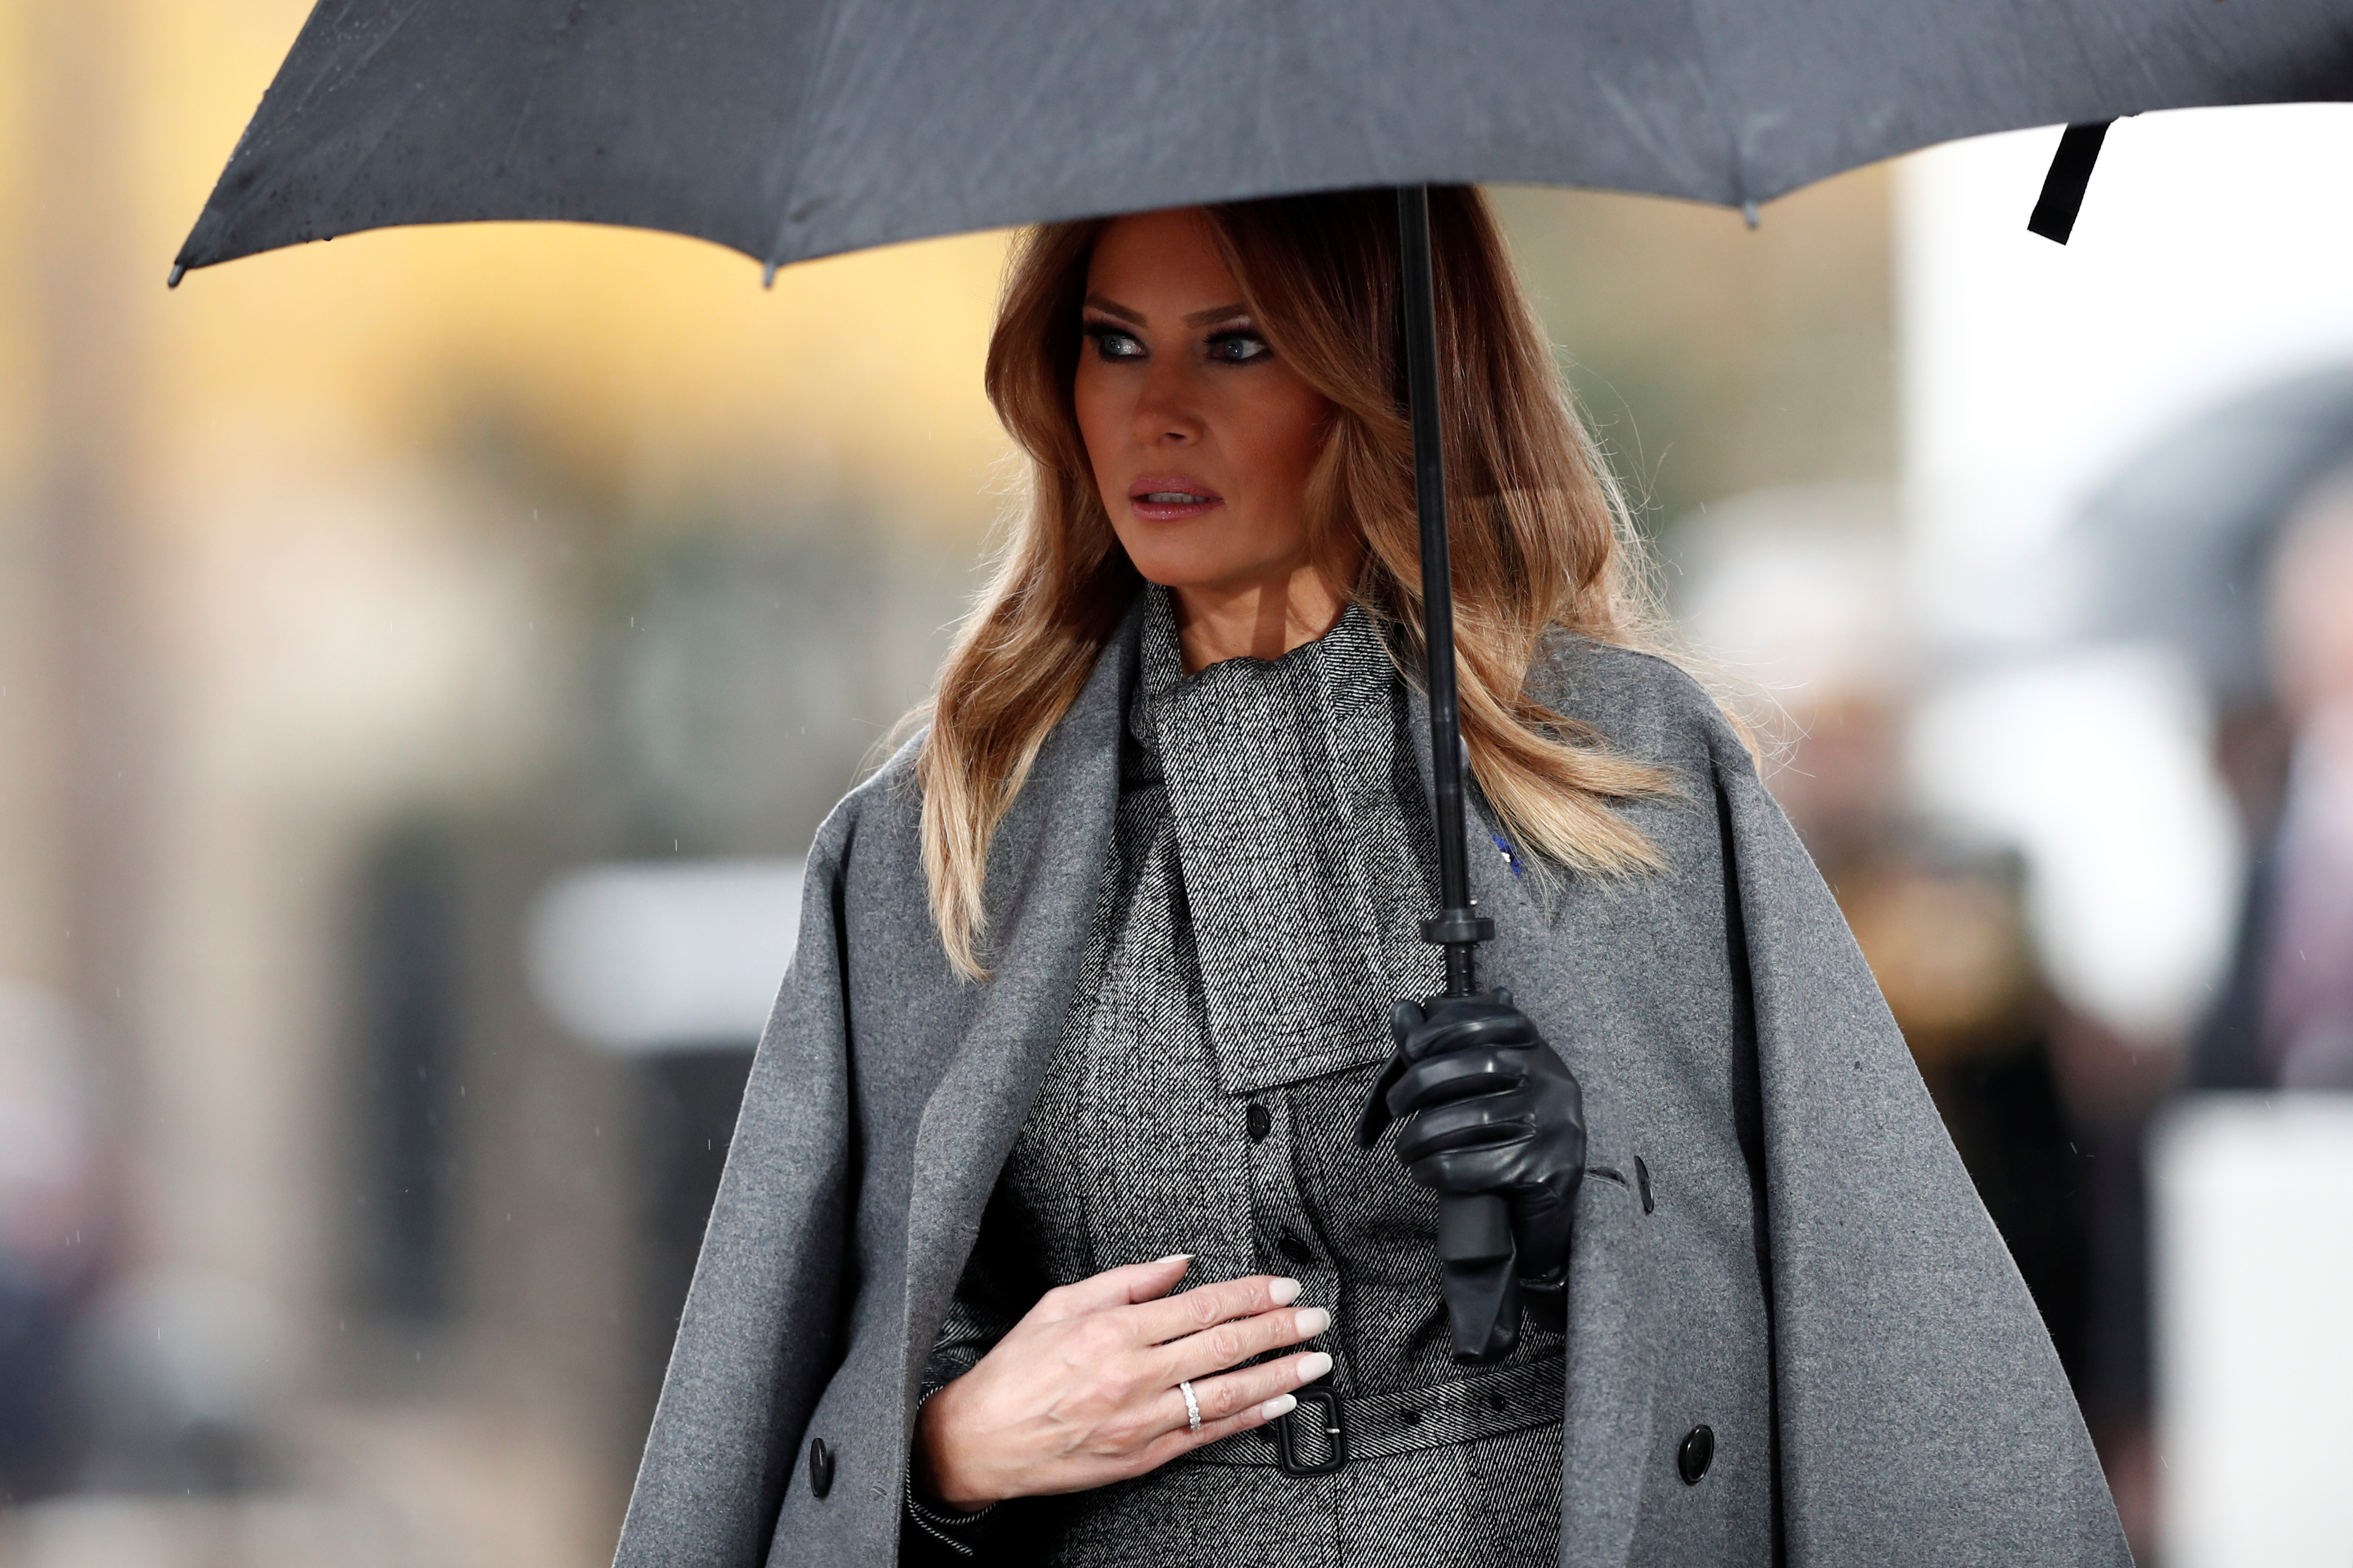 U.S. first lady Melania Trump arrives to attend a commemoration ceremony for Armistice Day, 100 years after the end of the First World War at the Arc de Triomphe in Paris, France, November 11, 2018. REUTERS/Benoit Tessier/Pool